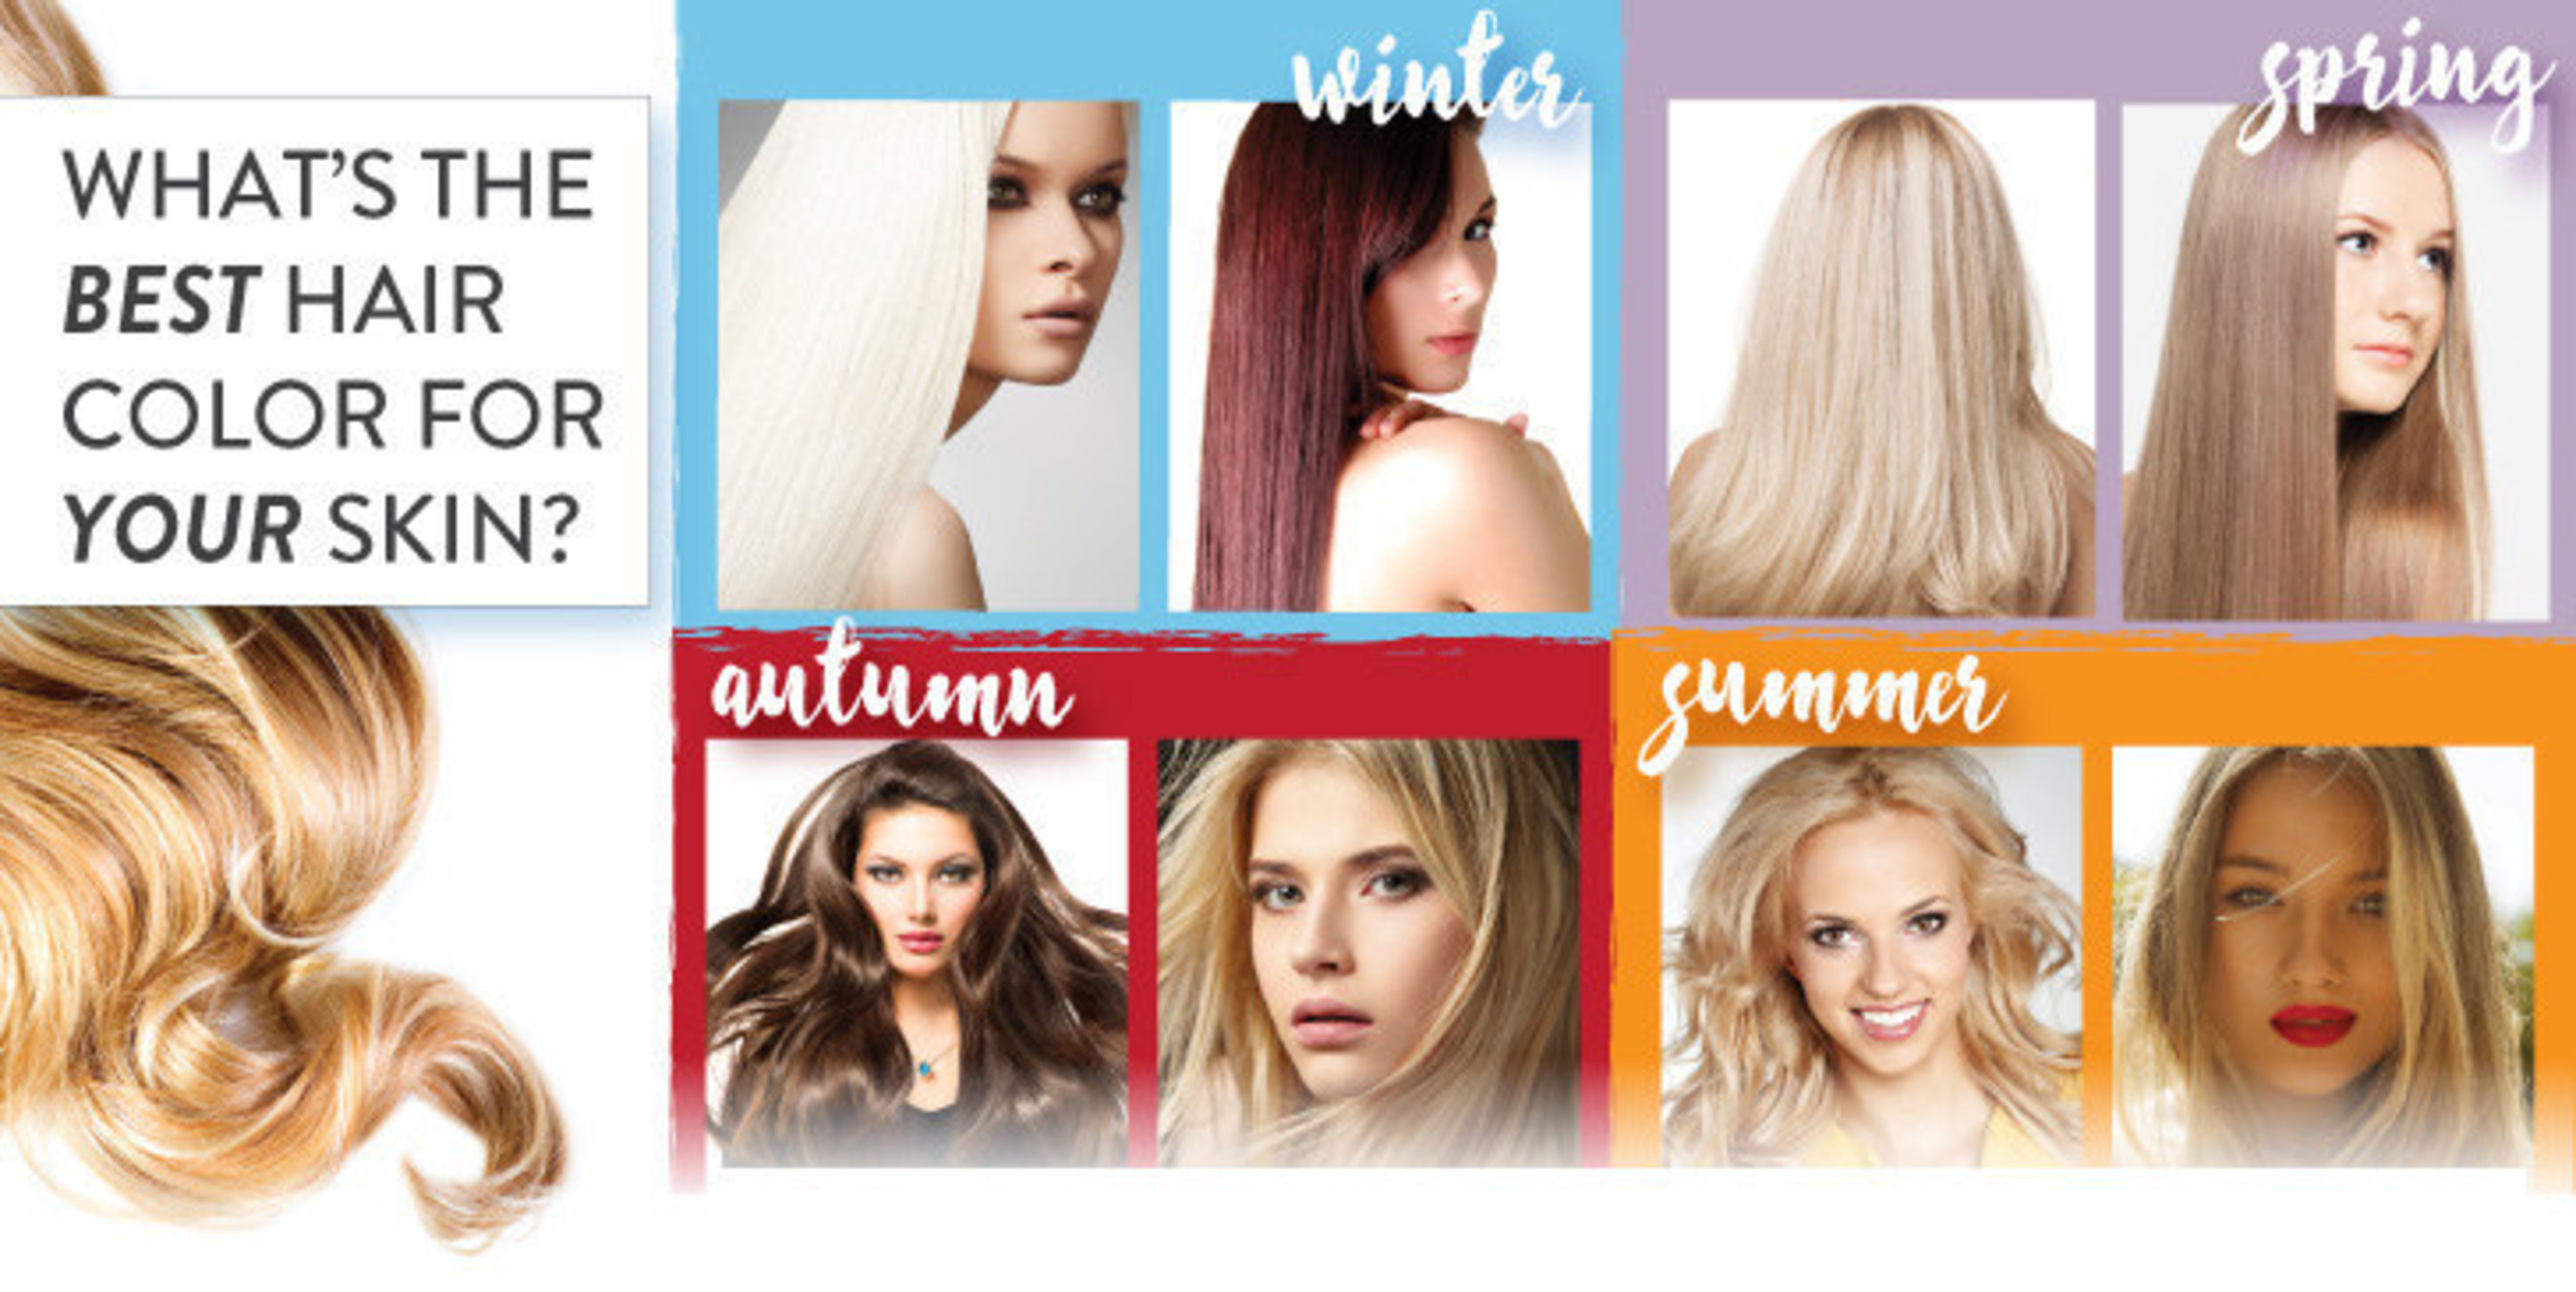 Whats The Best Hair Color For Your Skin Tone Vixen Daily Will Show